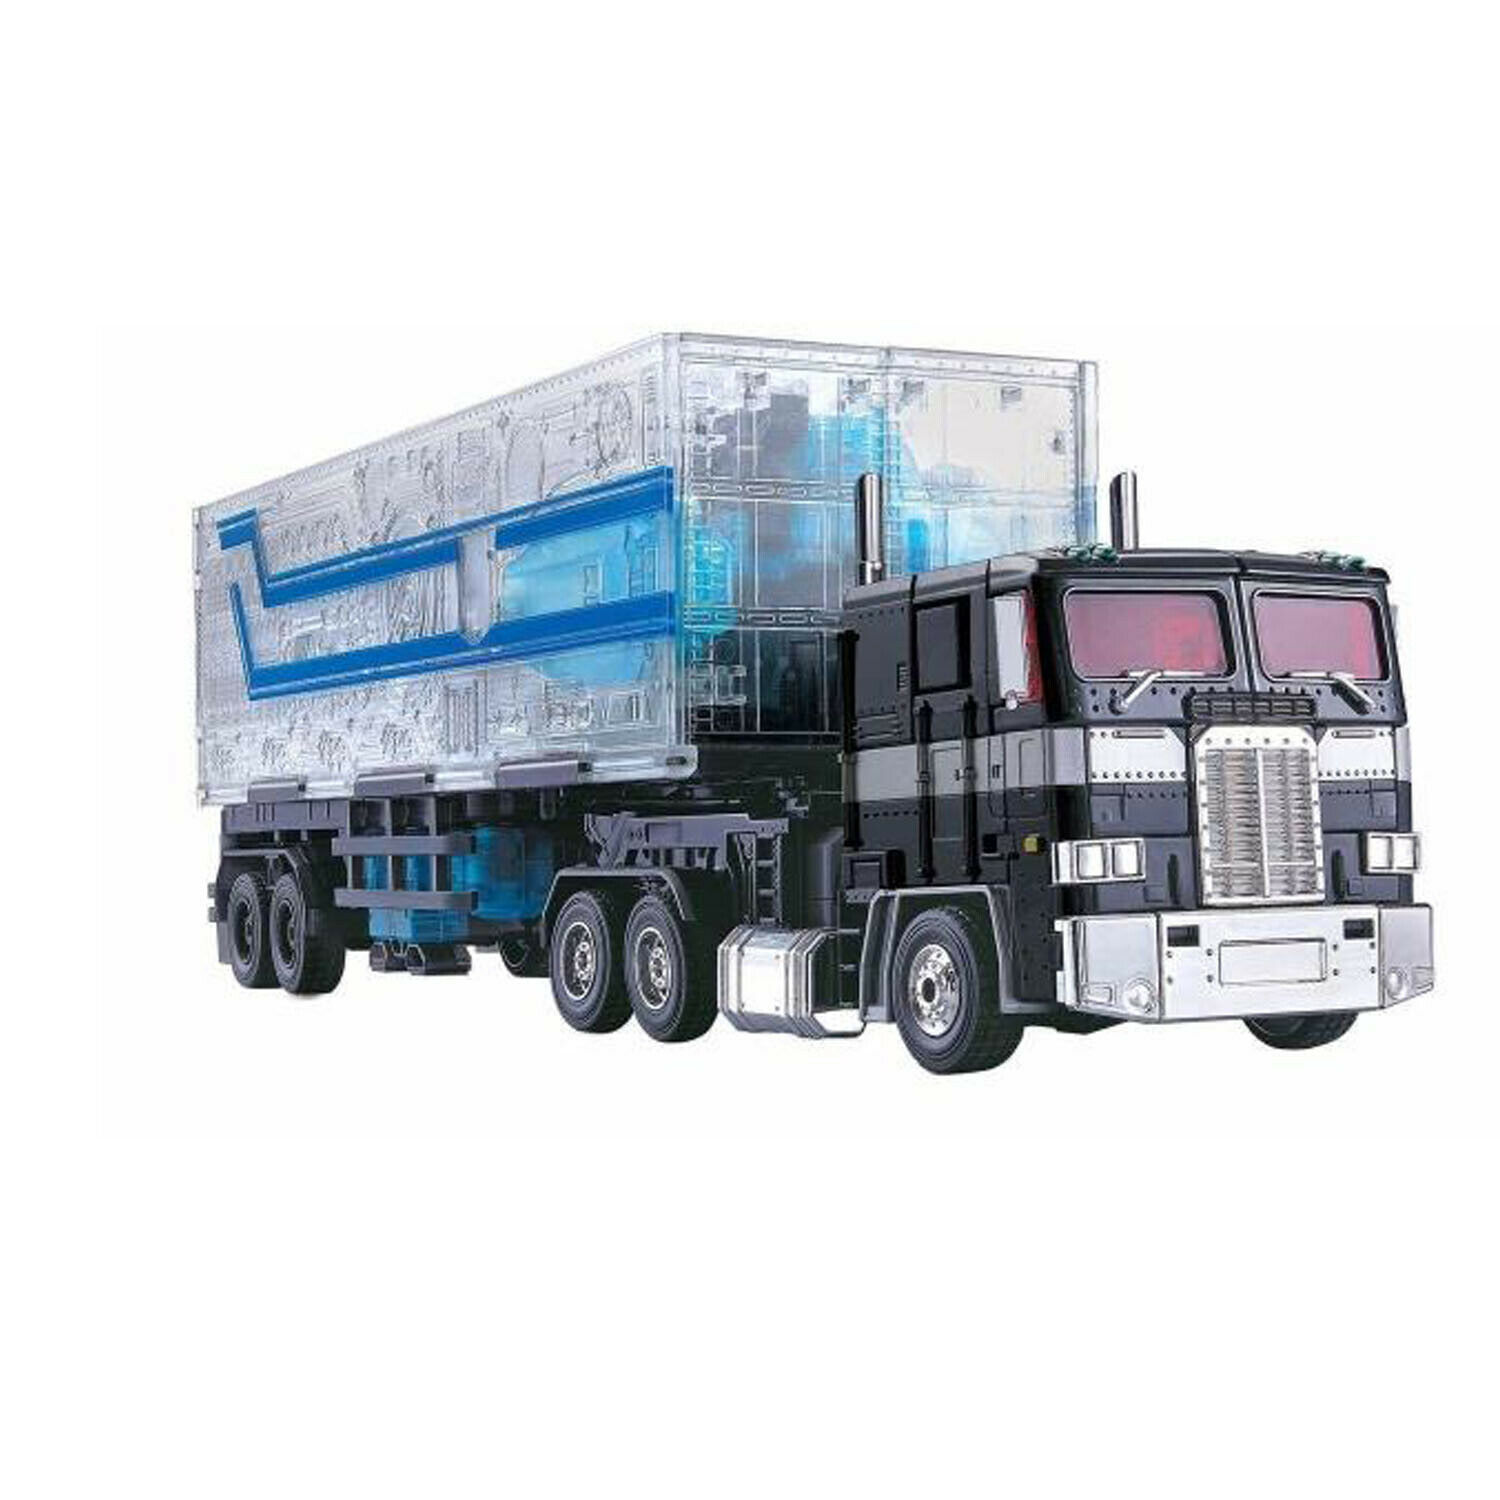 Transformers Optimus Prime MPP10 Transparent Remorque commandant eau Hot